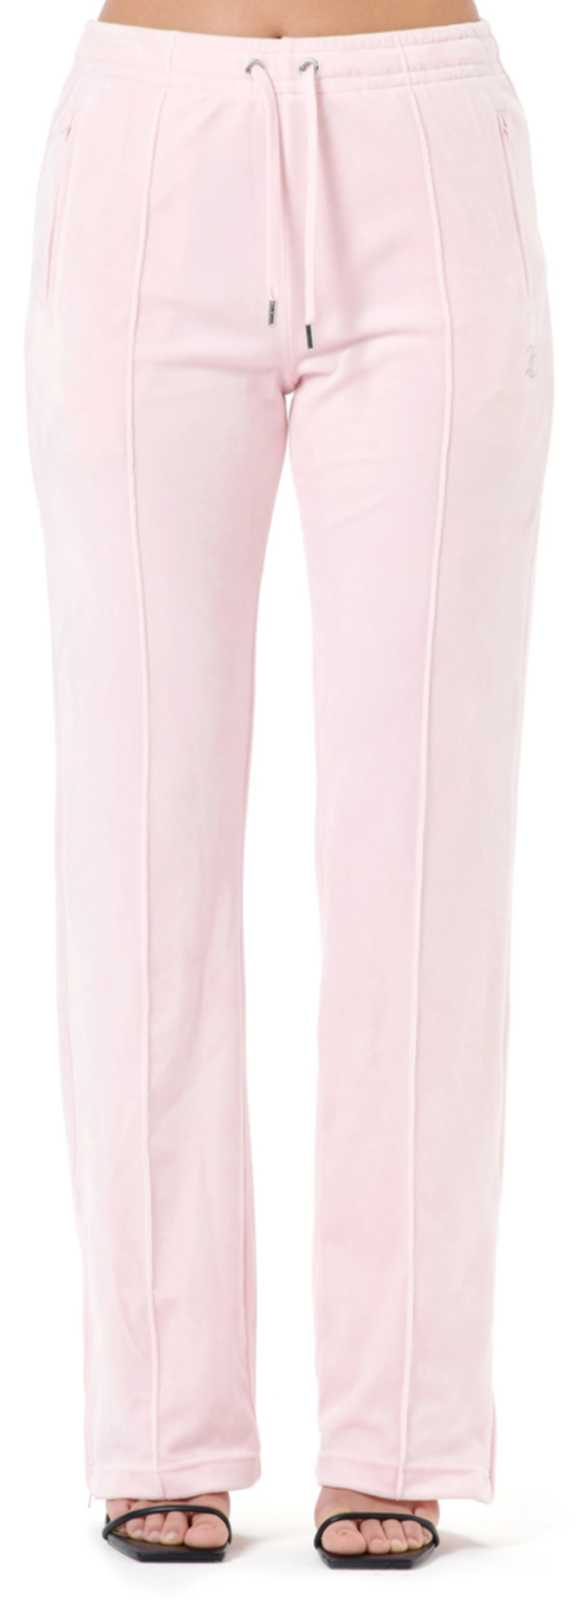 Juicy Couture Tina Velour Bottoms	Almond Blossom